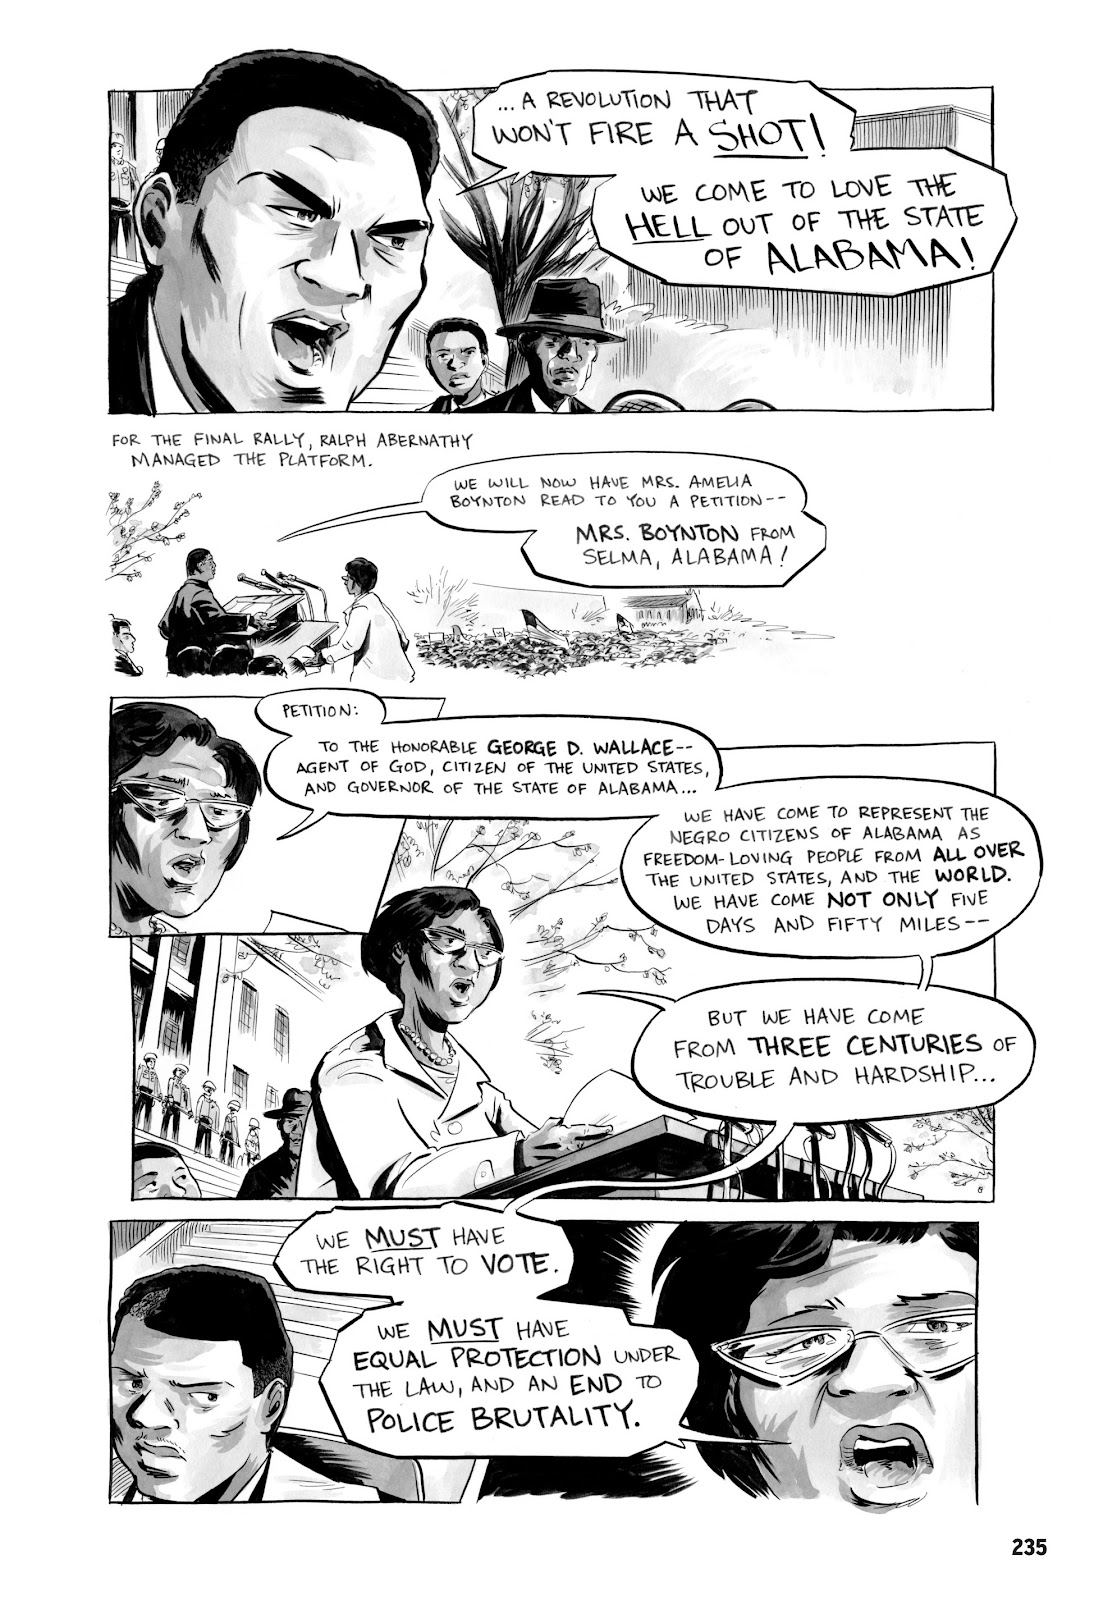 March 3 Page 229